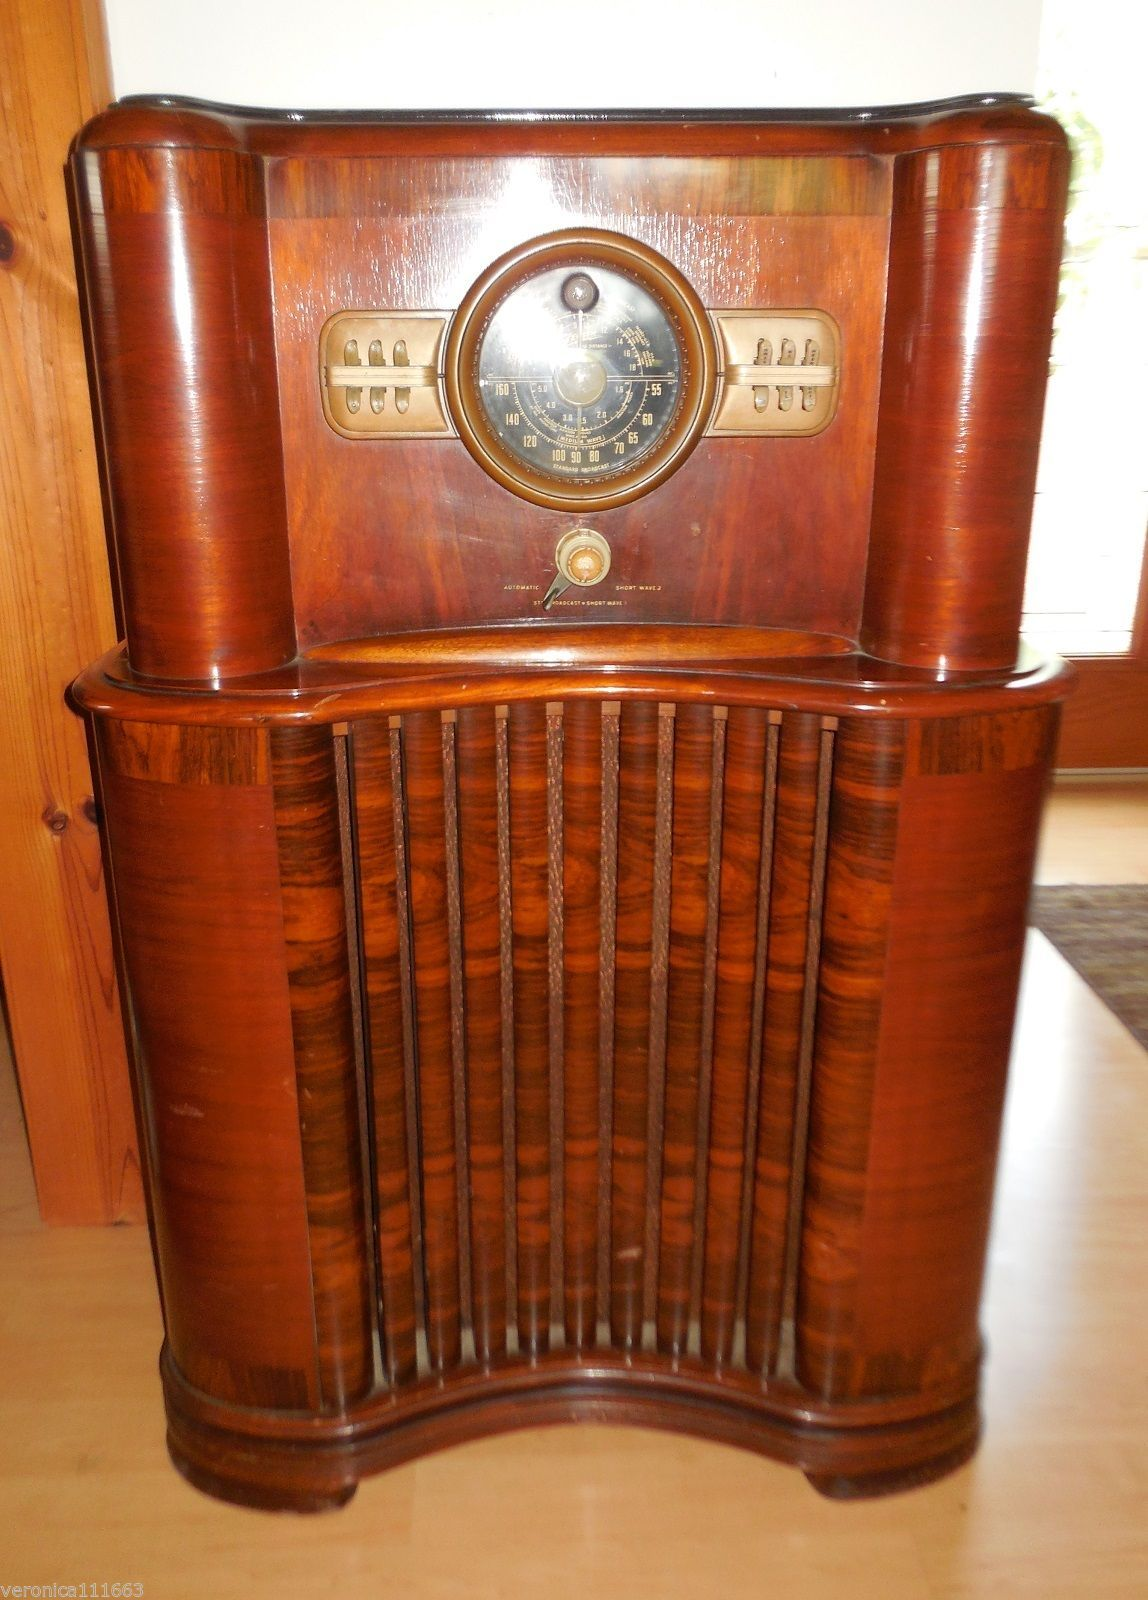 Genuine Zenith Console Radio Vintage 1940 Floor Model 8 S 463 Wood Cabinet Used